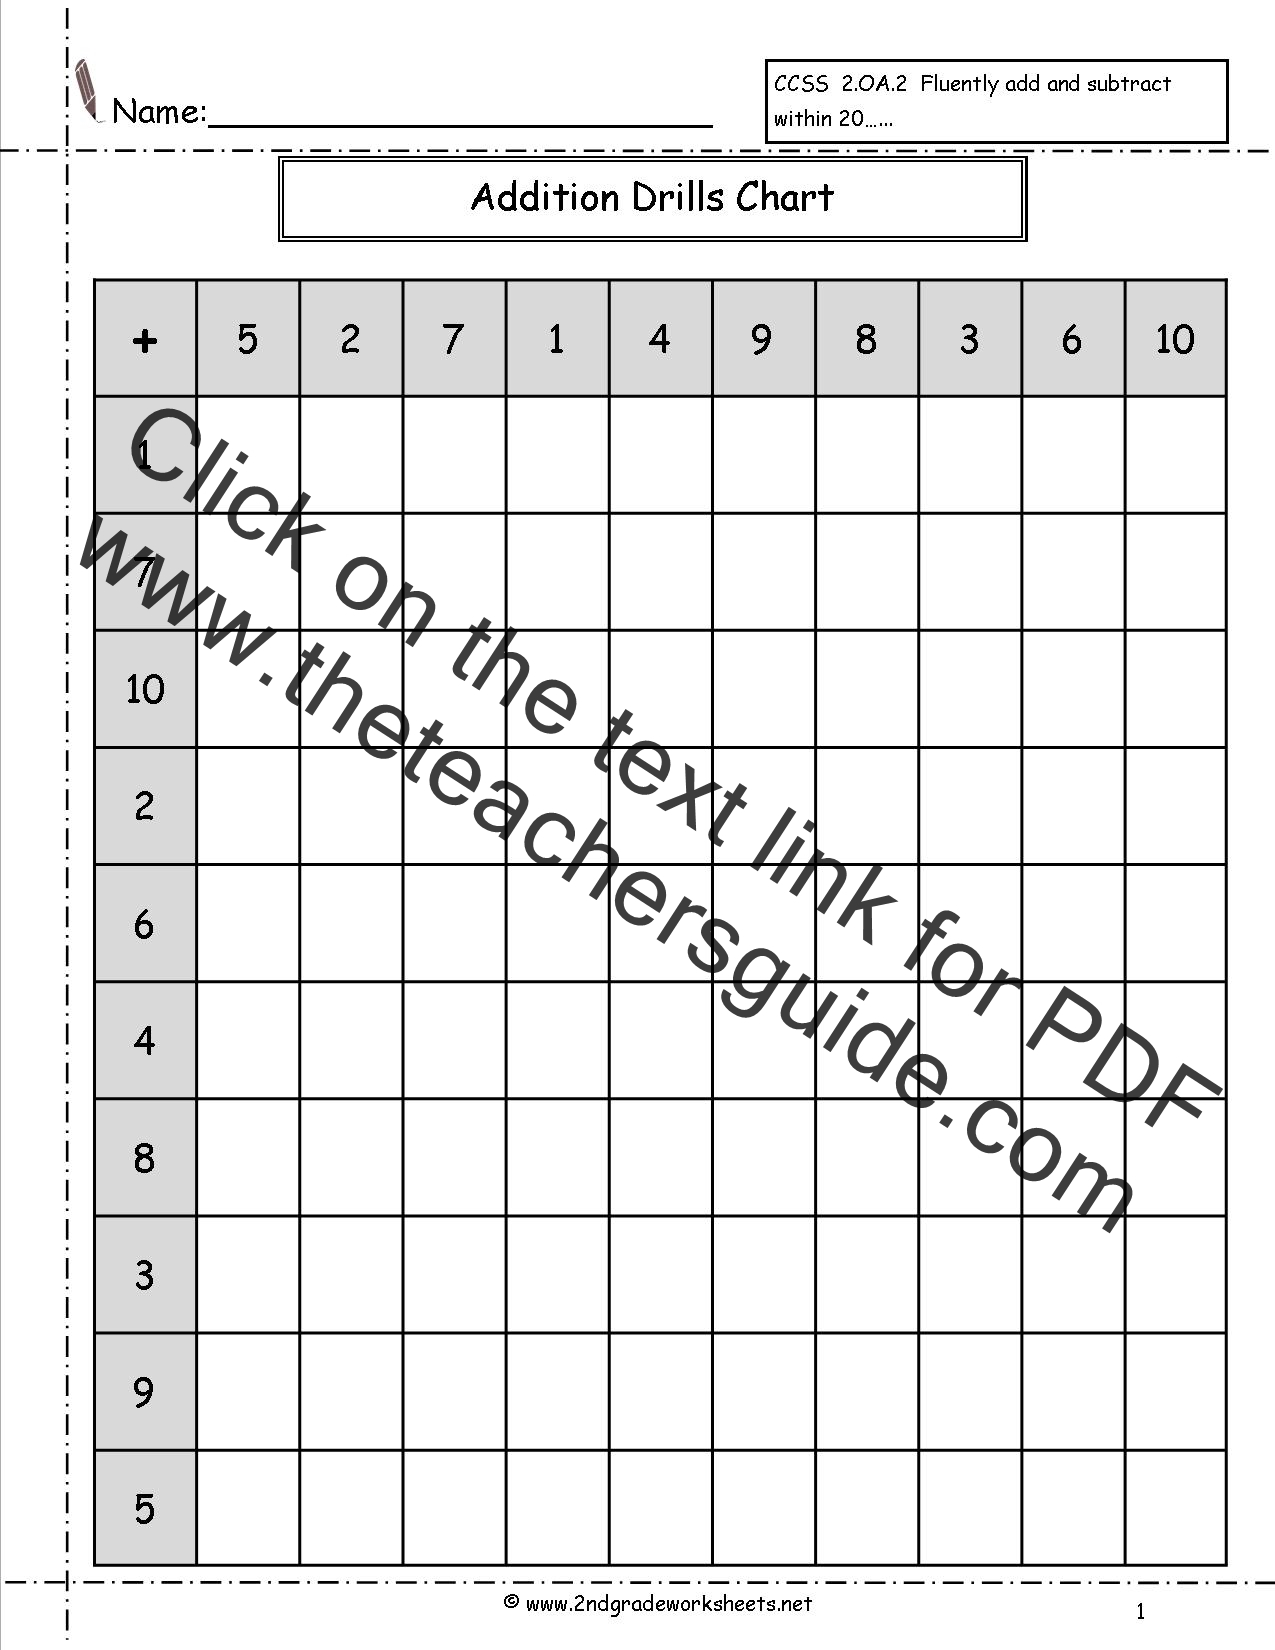 Made by Teachers: Free Timed Math Drills